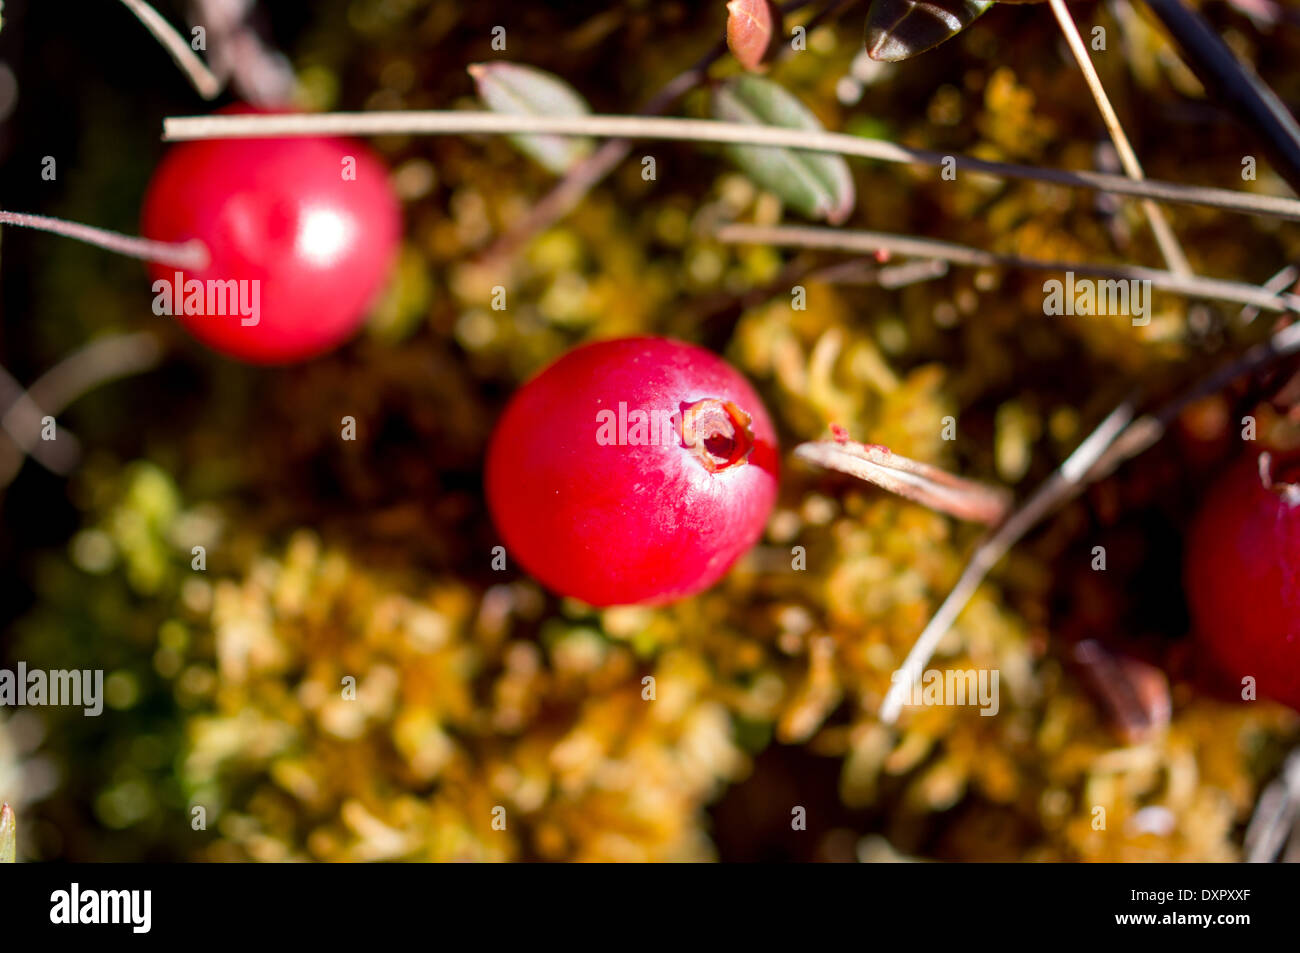 Cranberry growing in a swamp - Stock Image